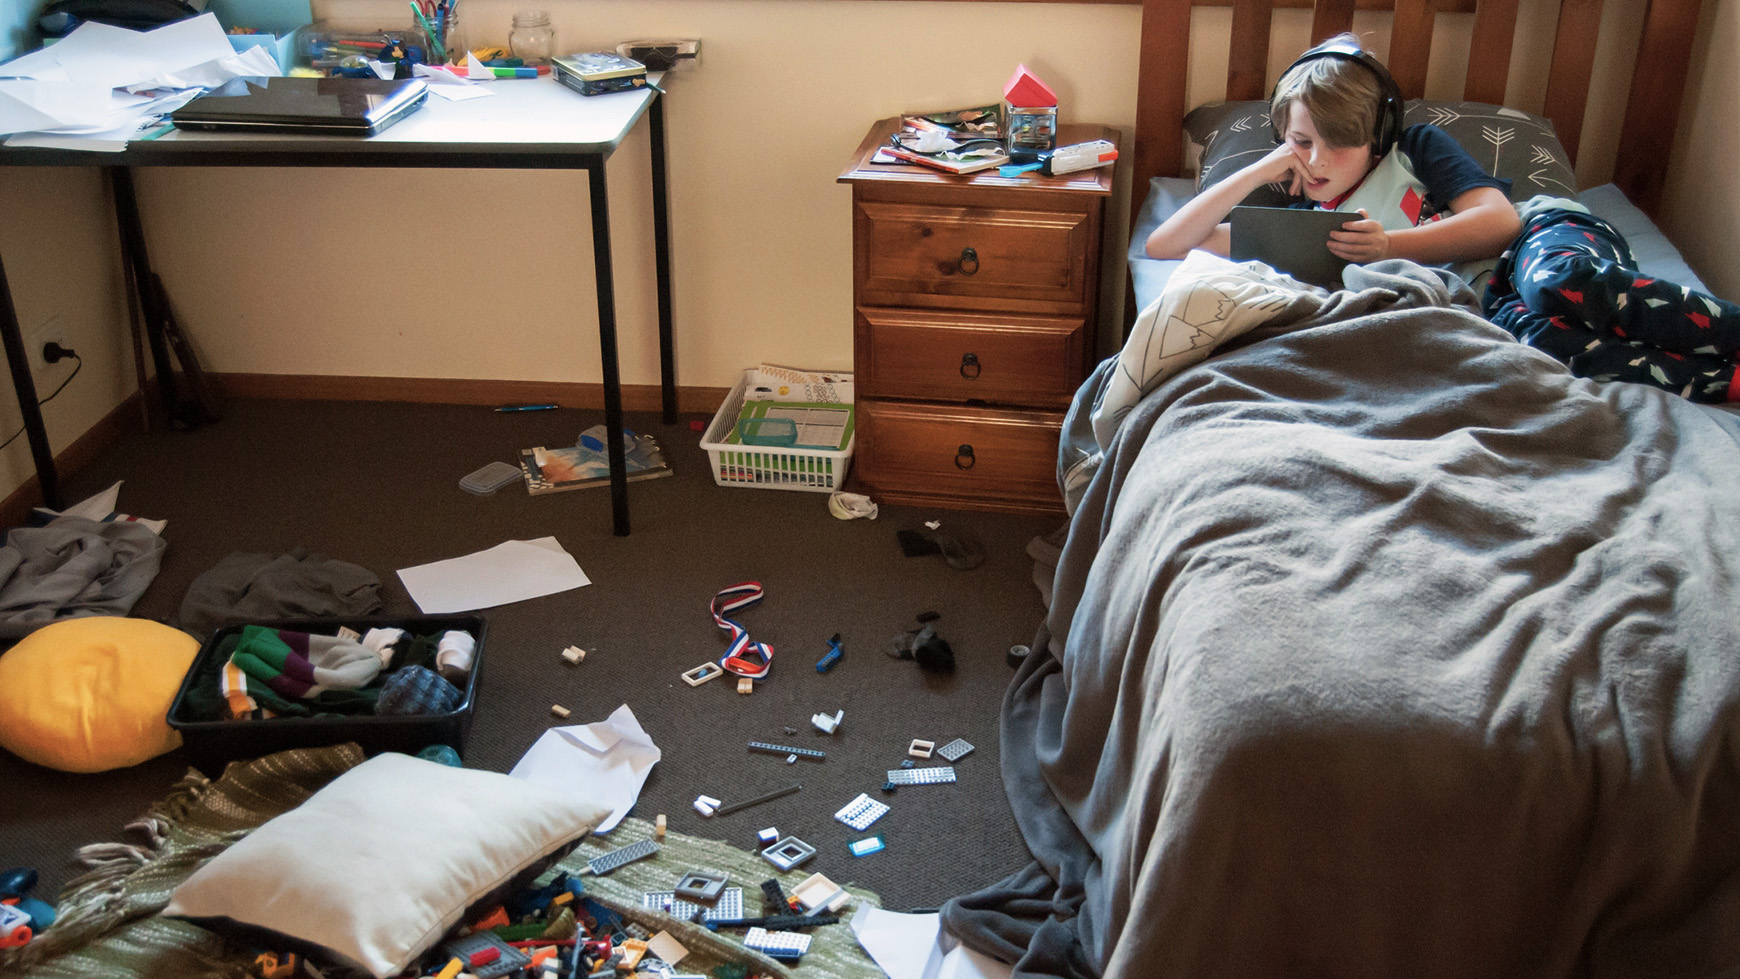 Why Are Kids With Adhd Messy